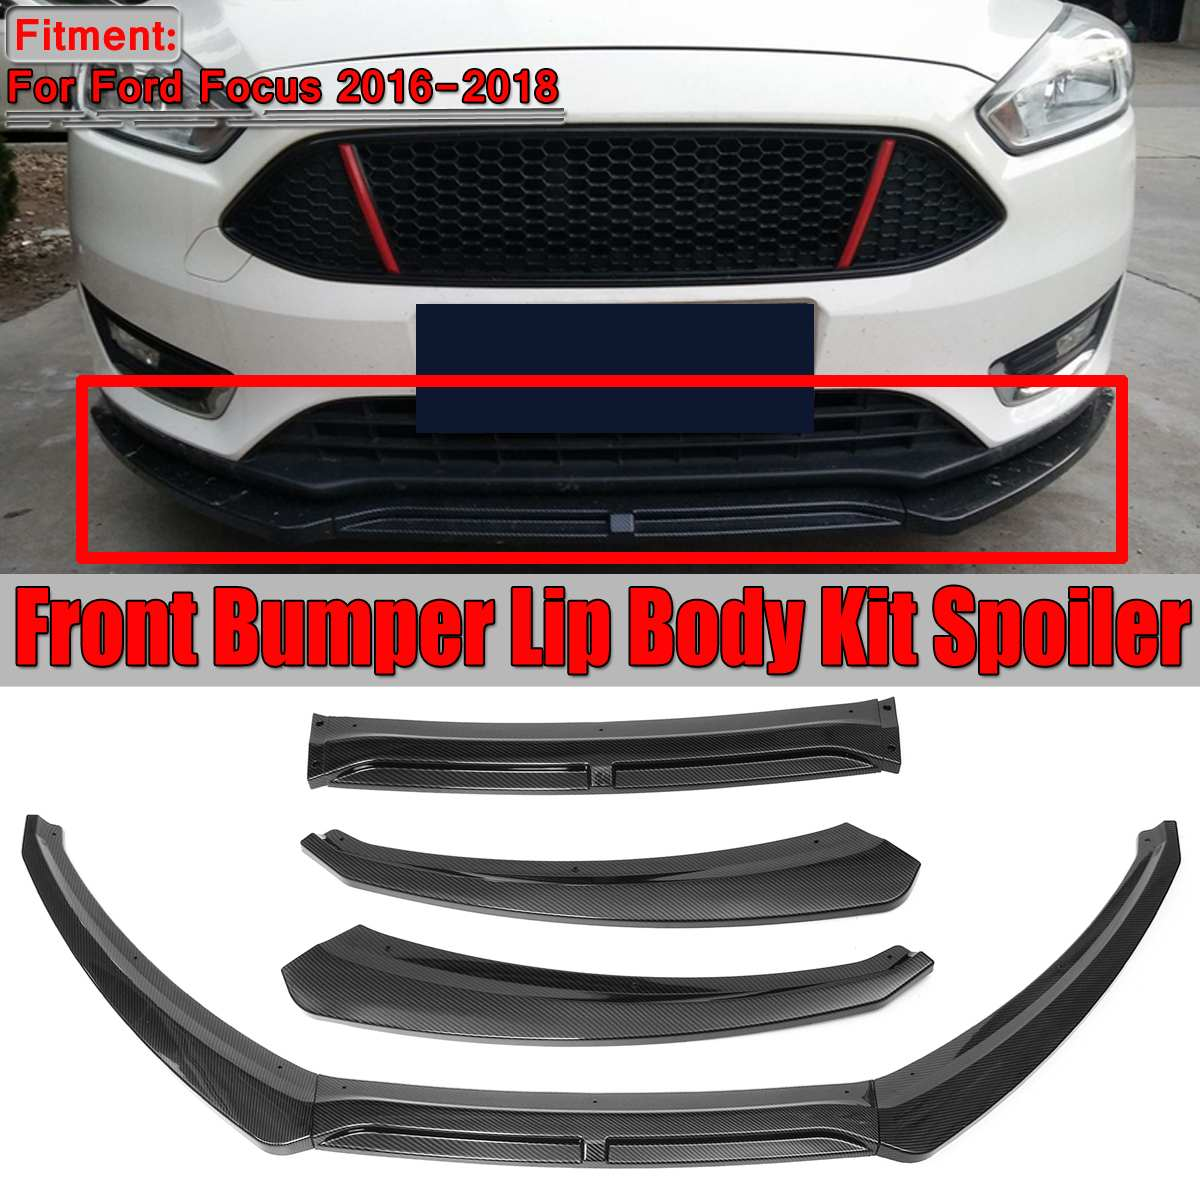 3DC Urethane Rear Lip Valance For Ford Fusion 13-14